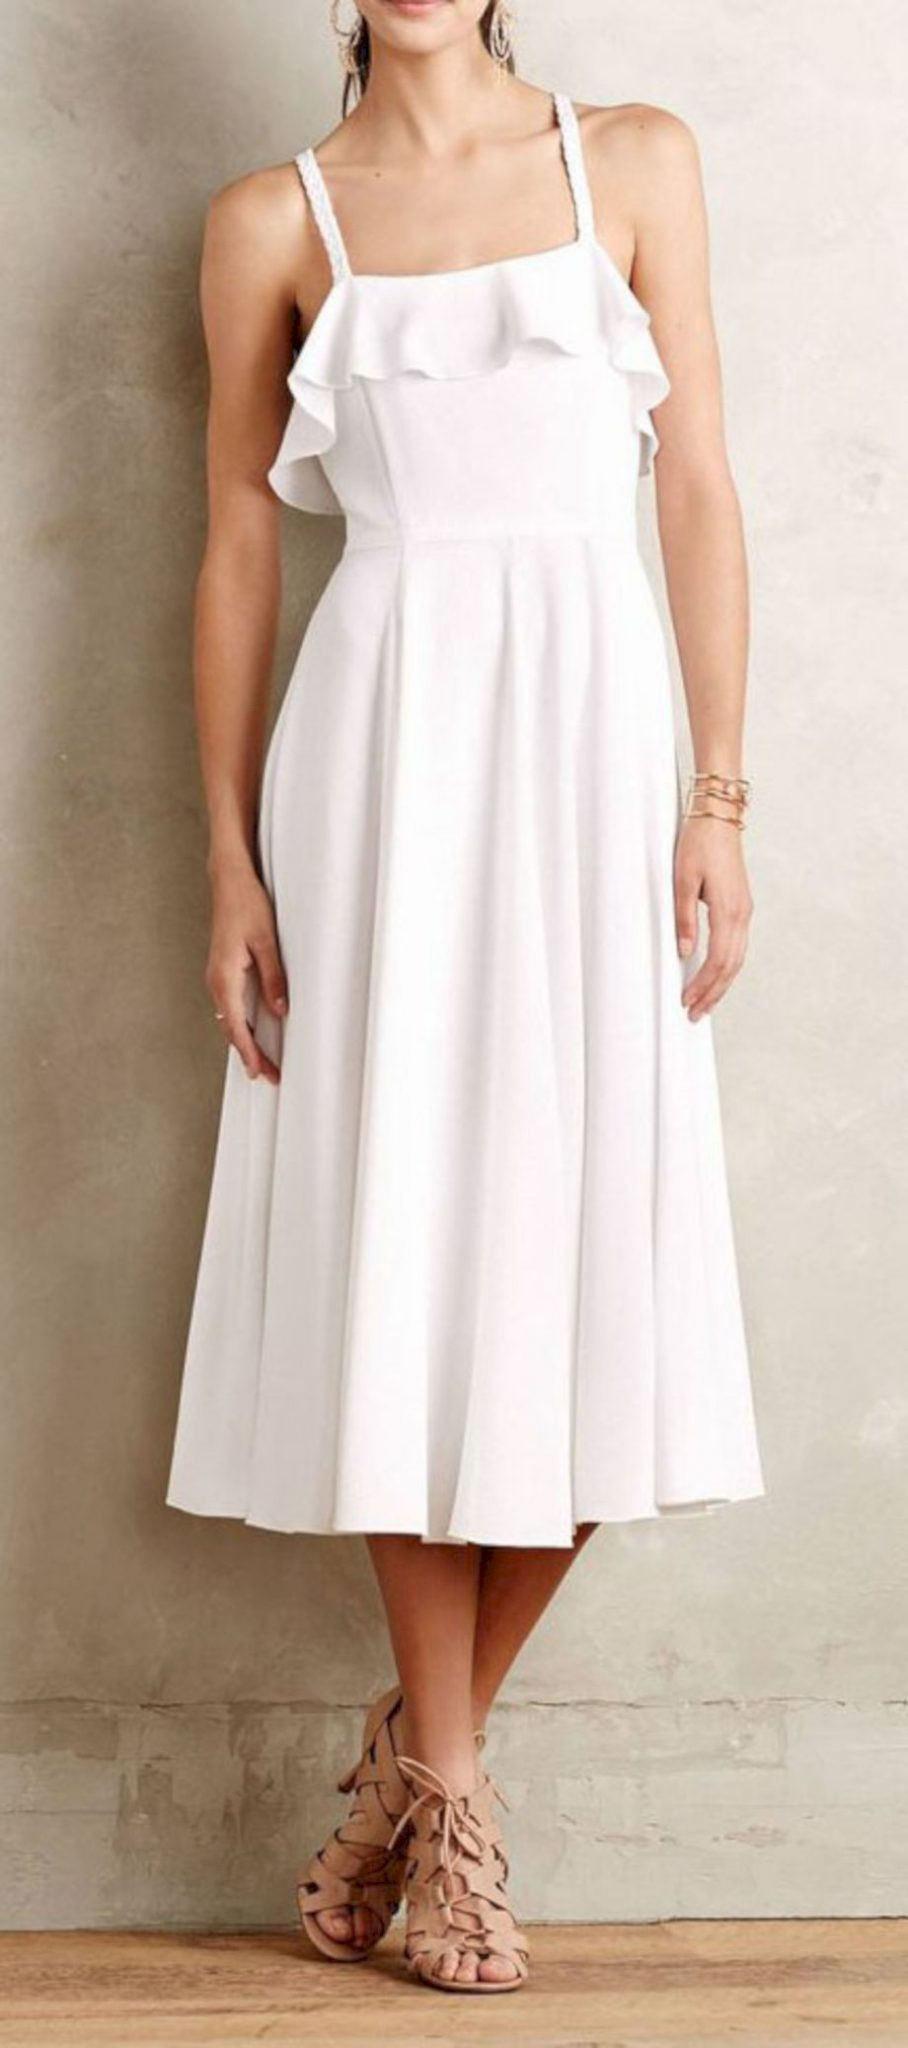 Formal midi dresses outfits 20